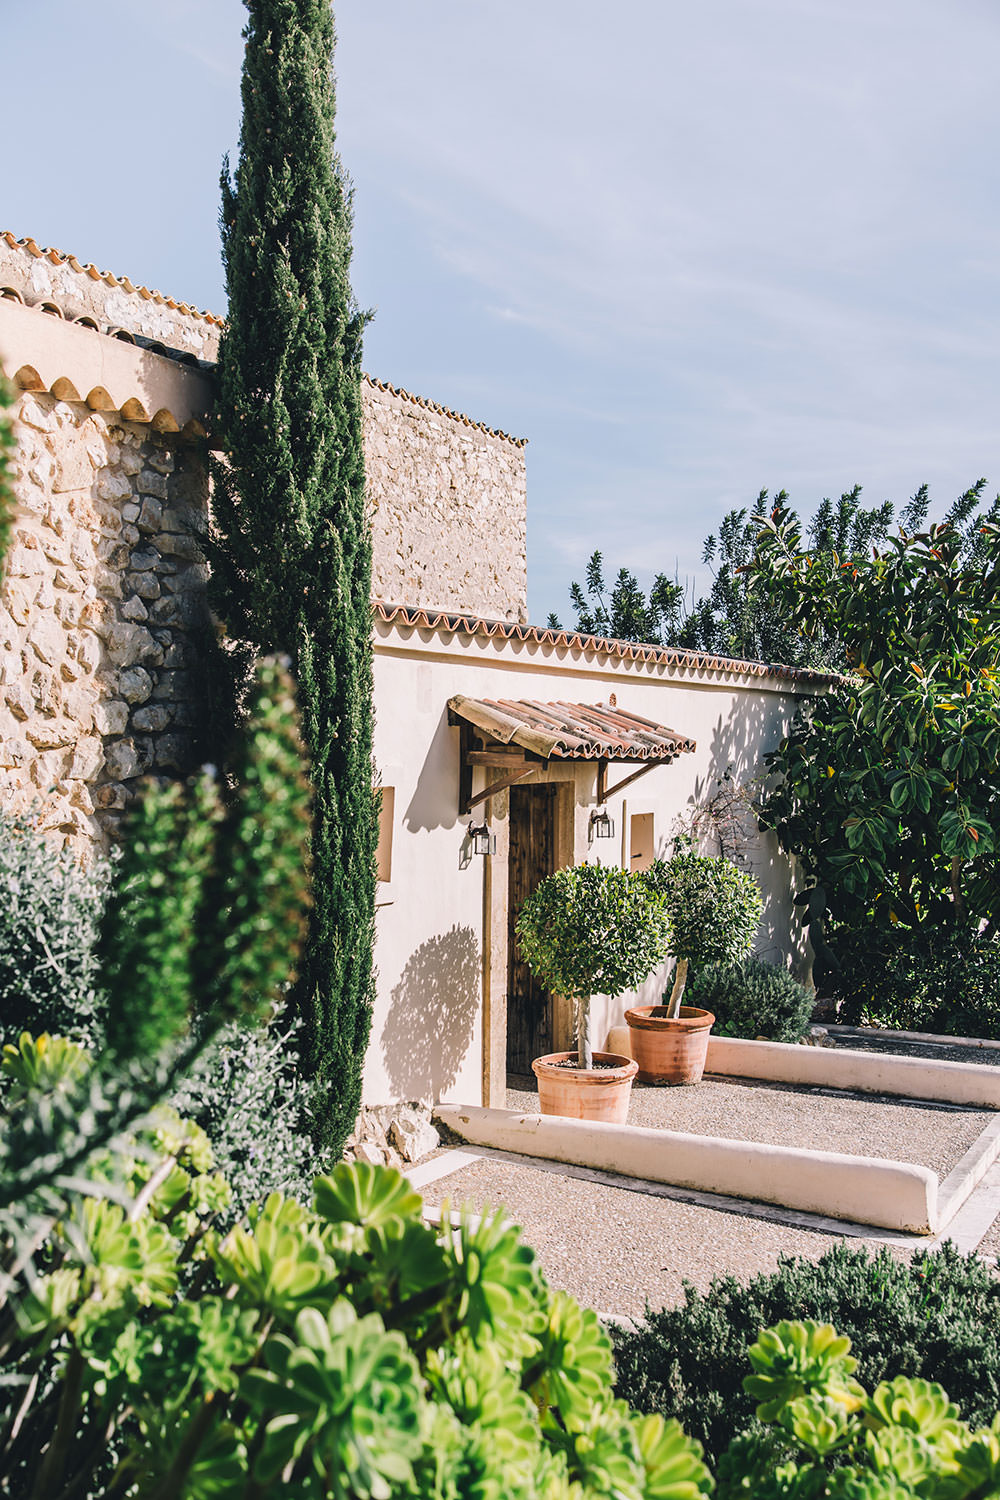 Building costs in Mallorca